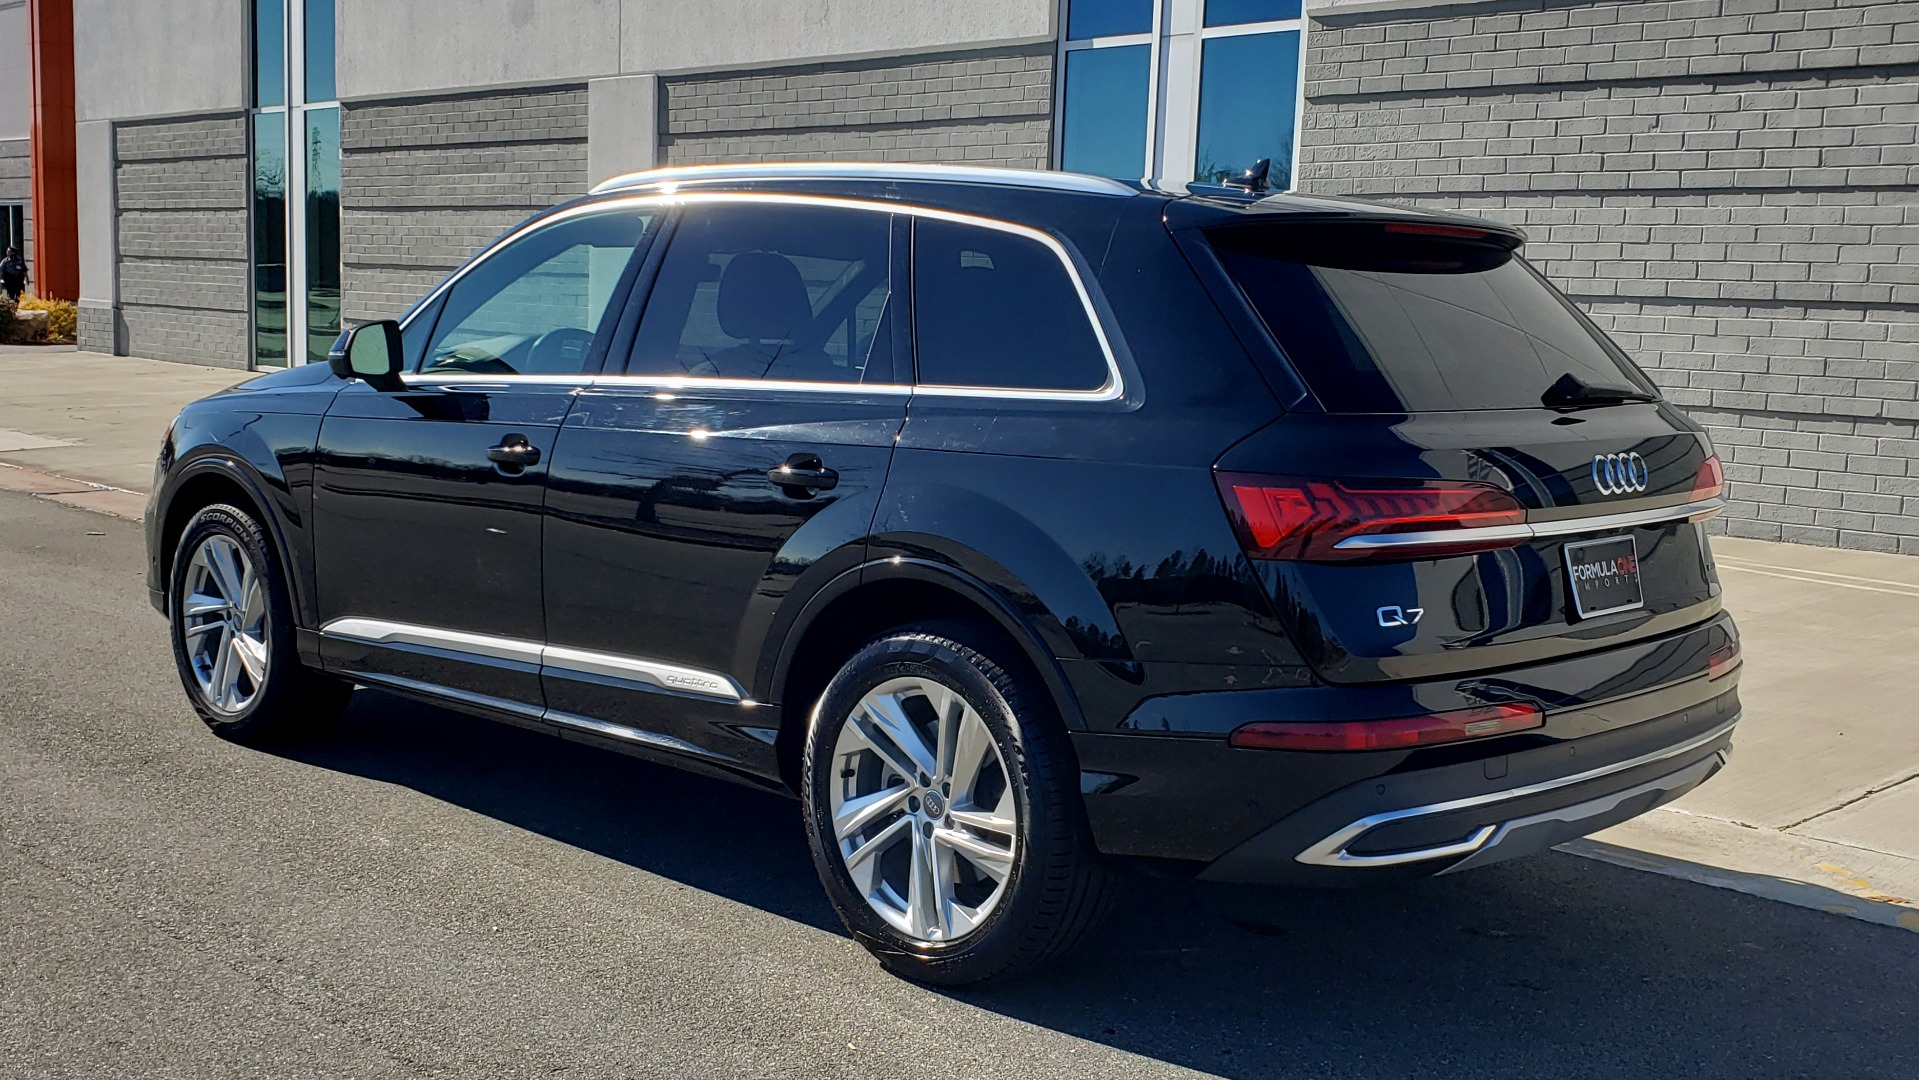 Used 2020 Audi Q7 PREMIUM PLUS / NAV / SUNROOF / 3-ROW / REARVIEW for sale Sold at Formula Imports in Charlotte NC 28227 5